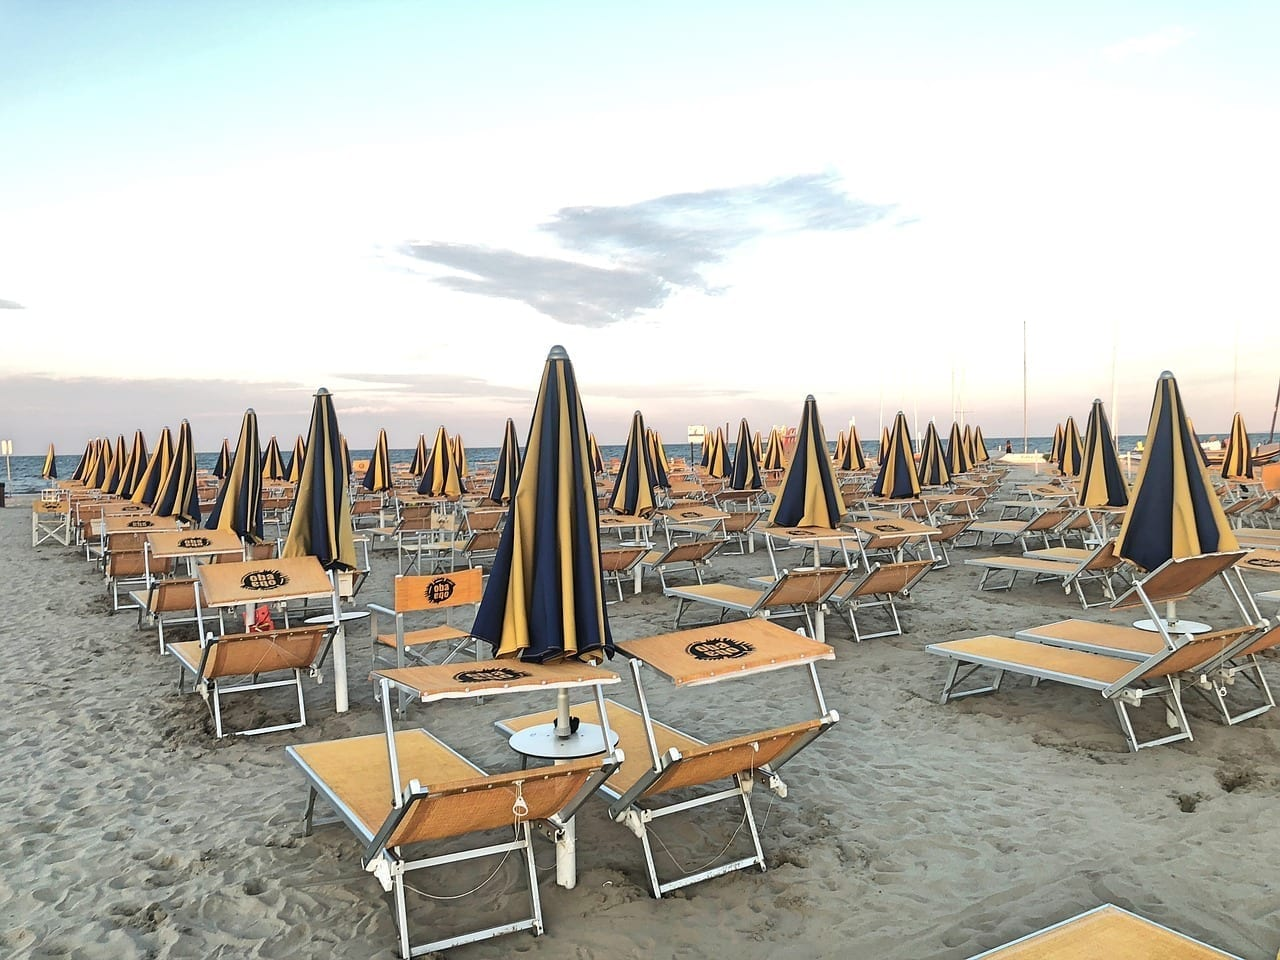 Playa Mar Cervia Italia